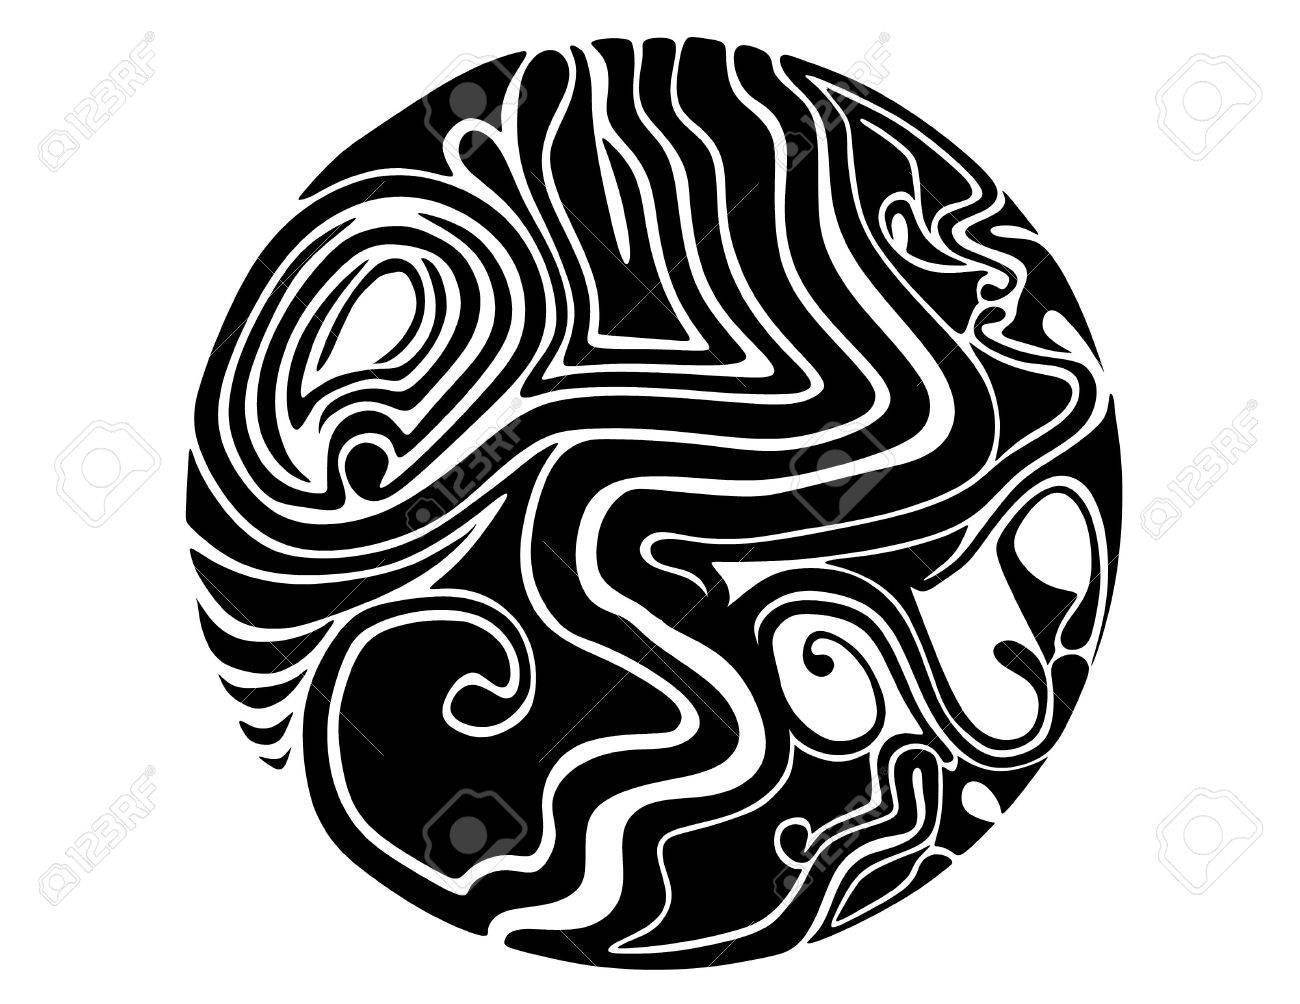 A Black And White Abstract Spherical Abstract Design Symbol Stock